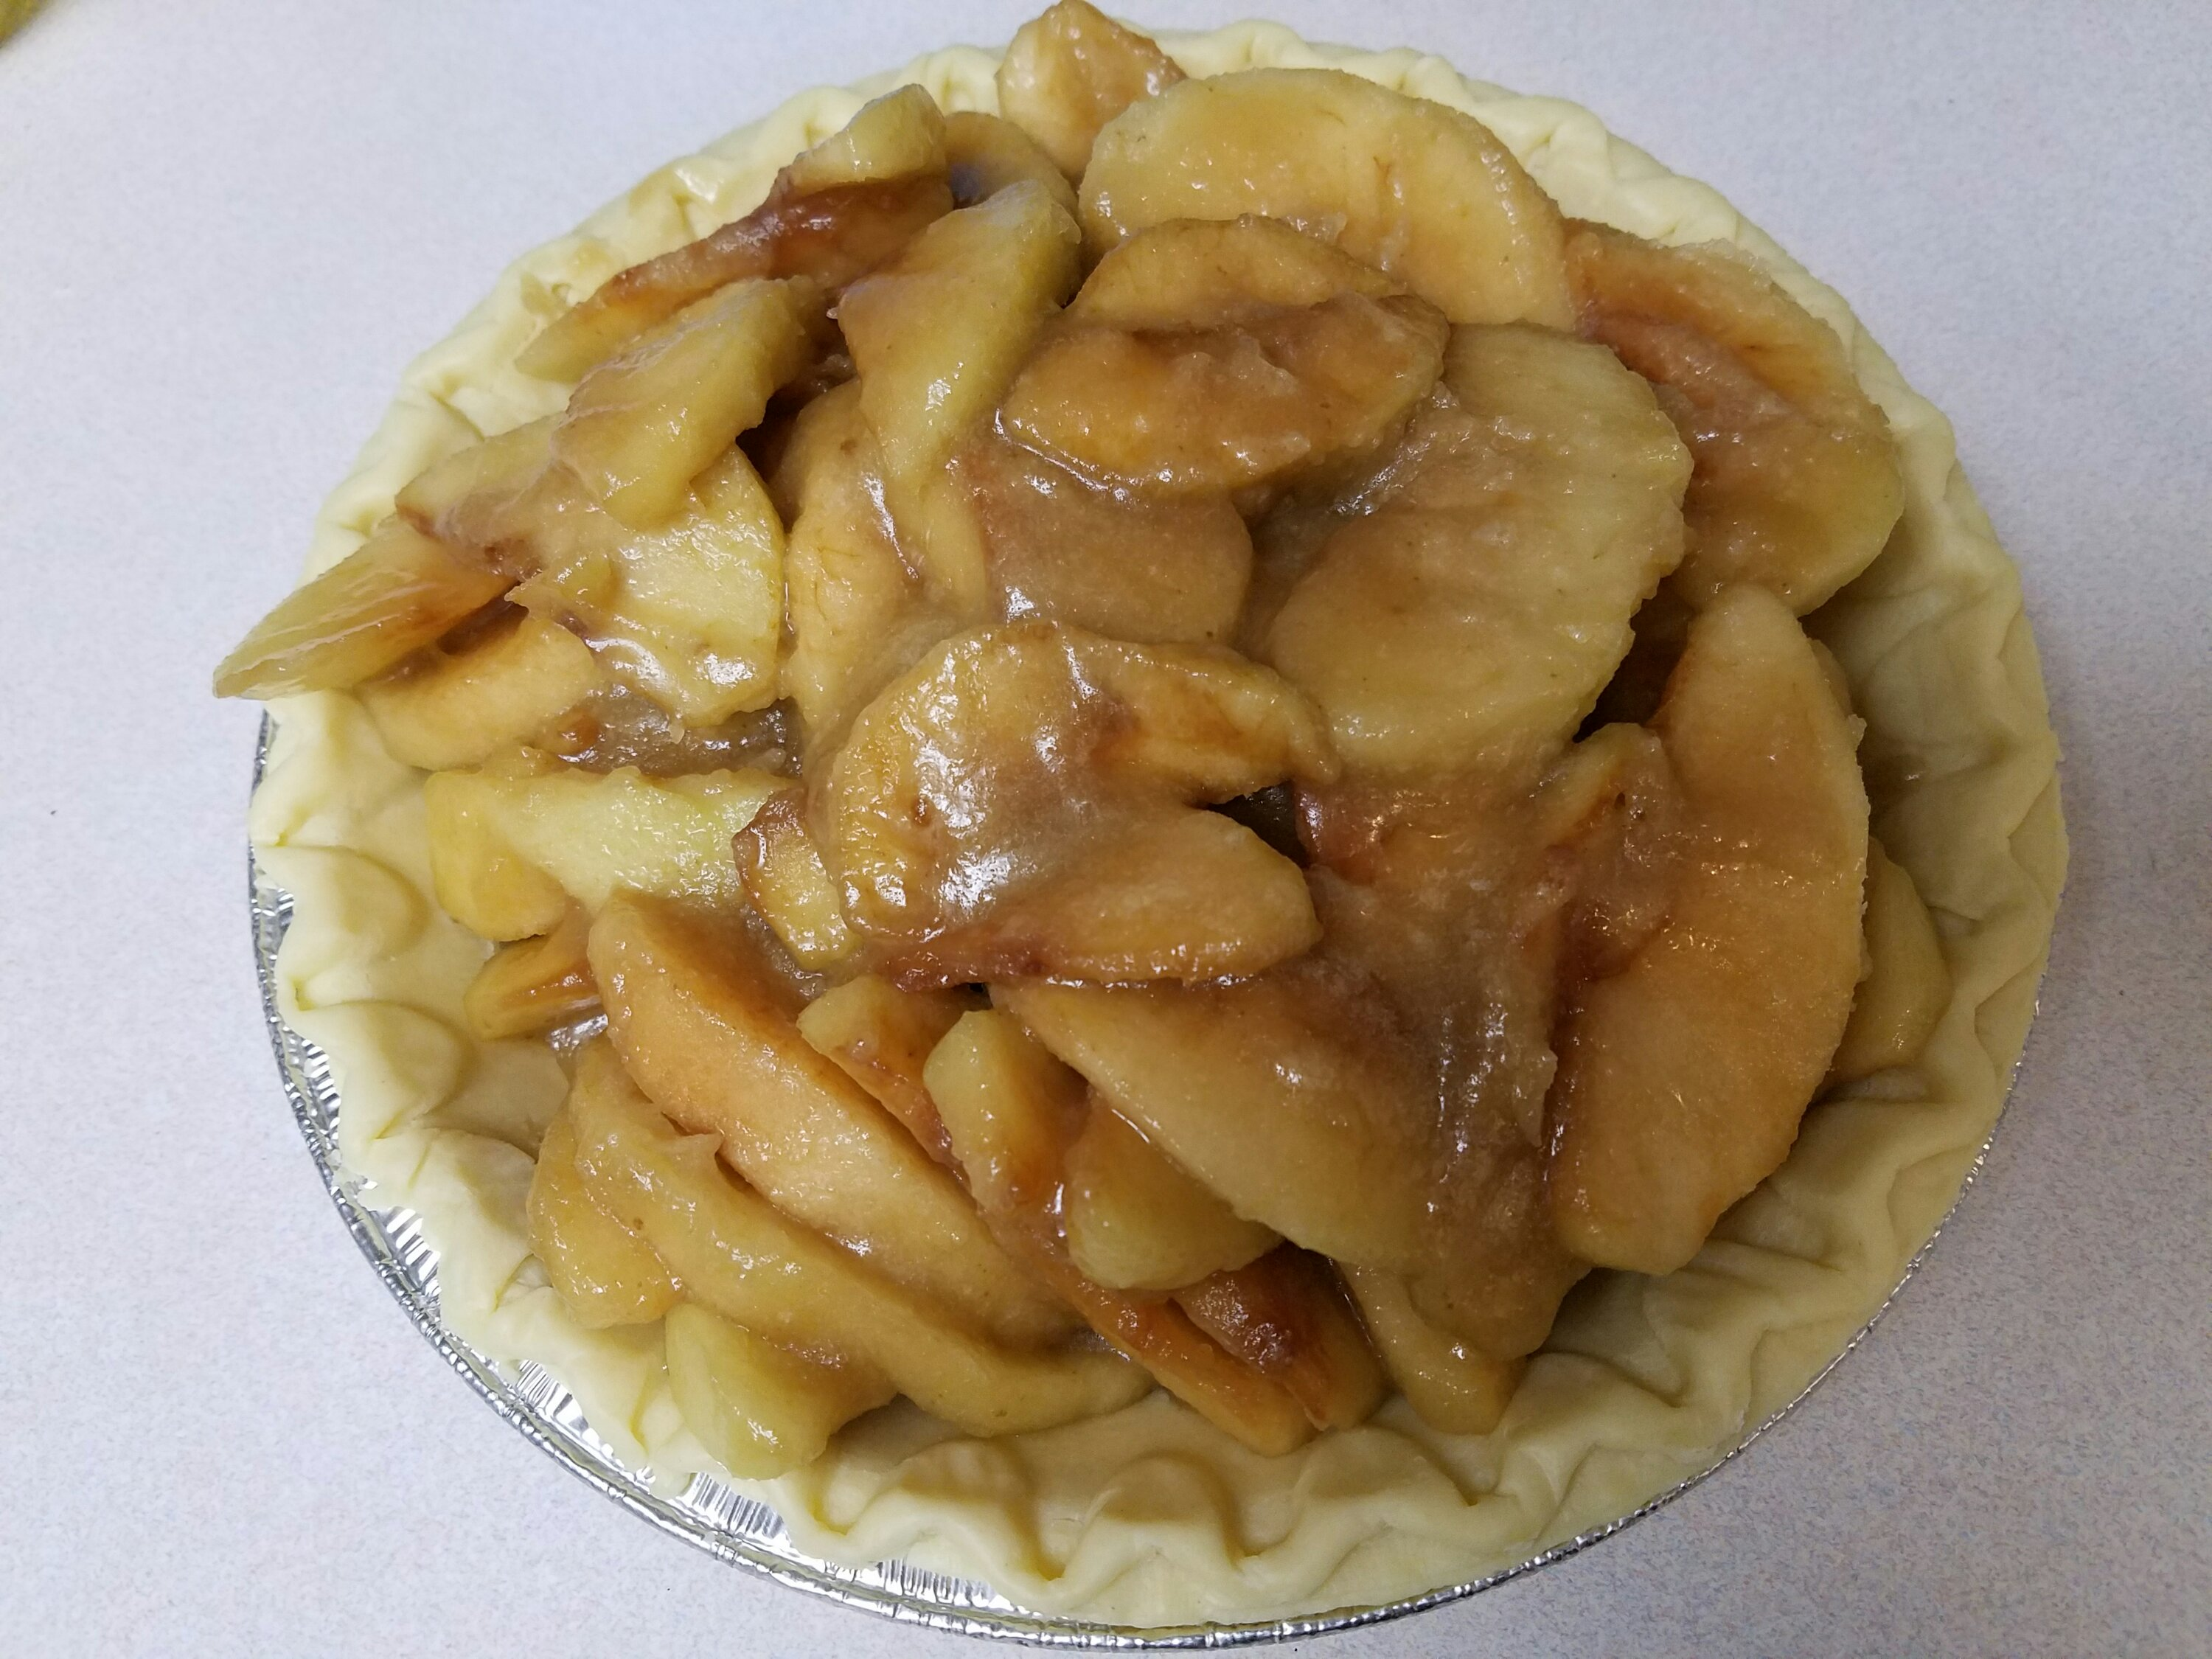 Mounded apple pie filling in tinned crust